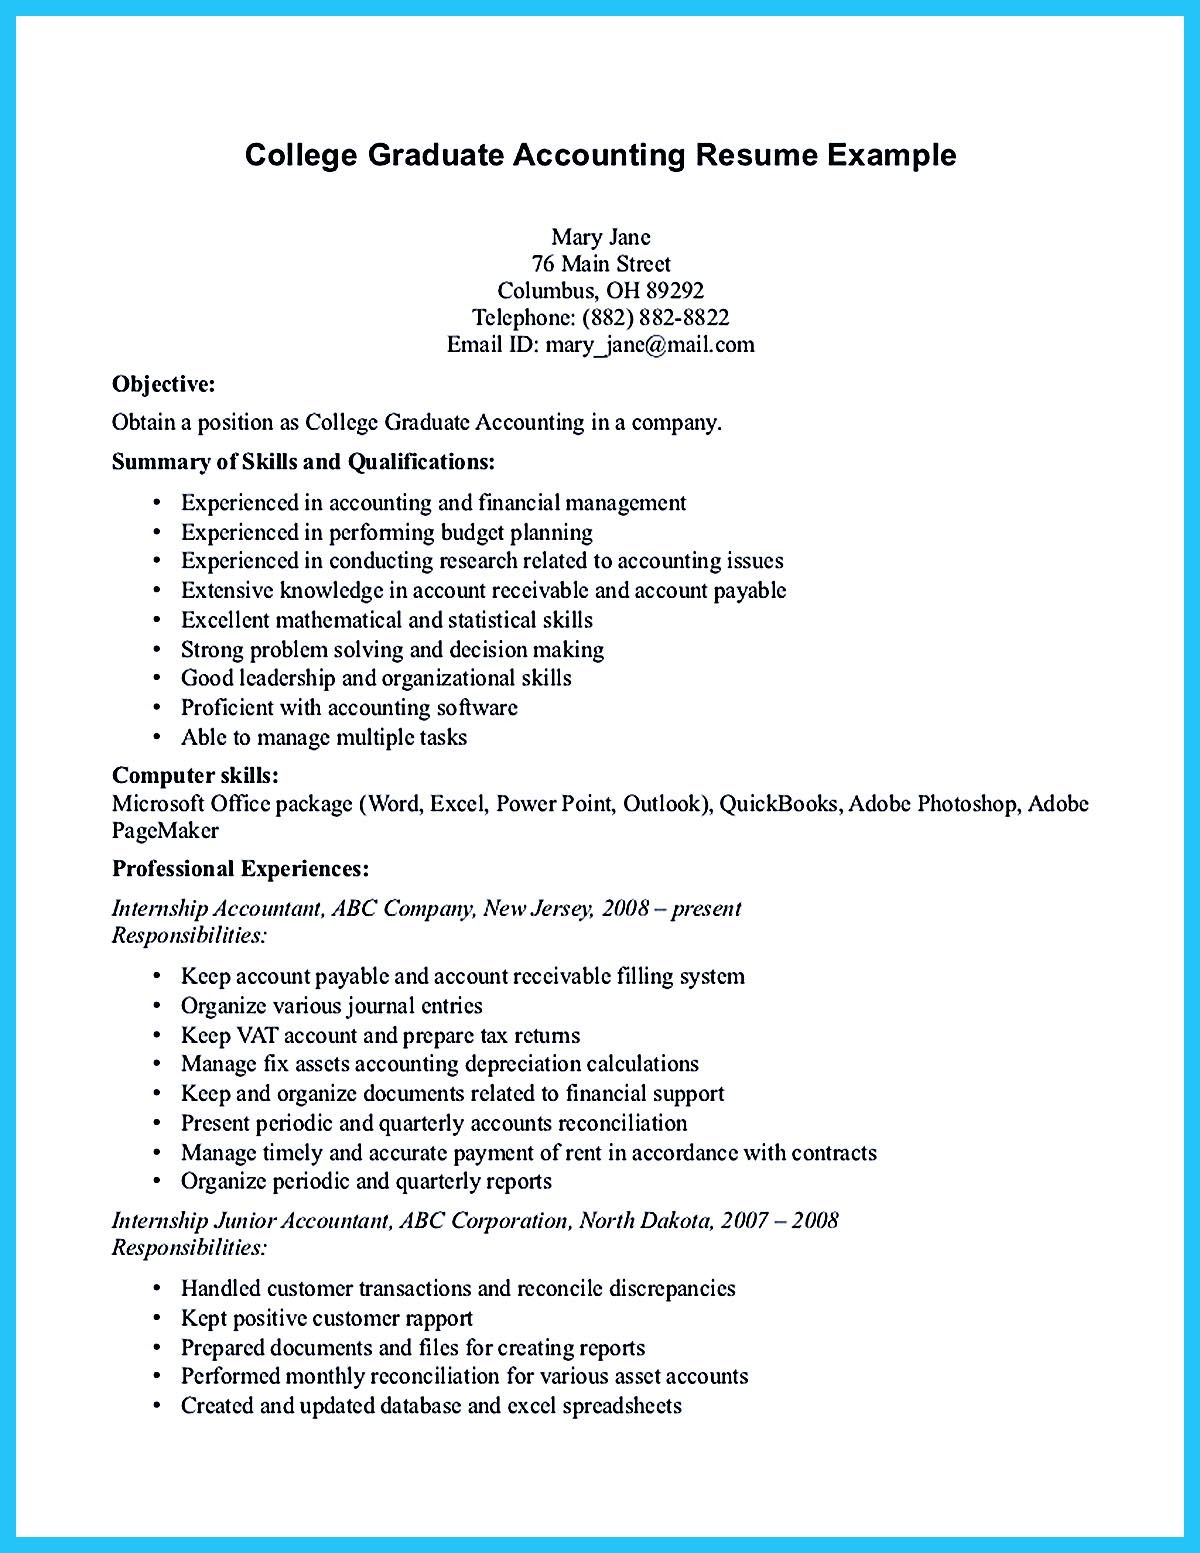 resume accounting student - Roberto.mattni.co